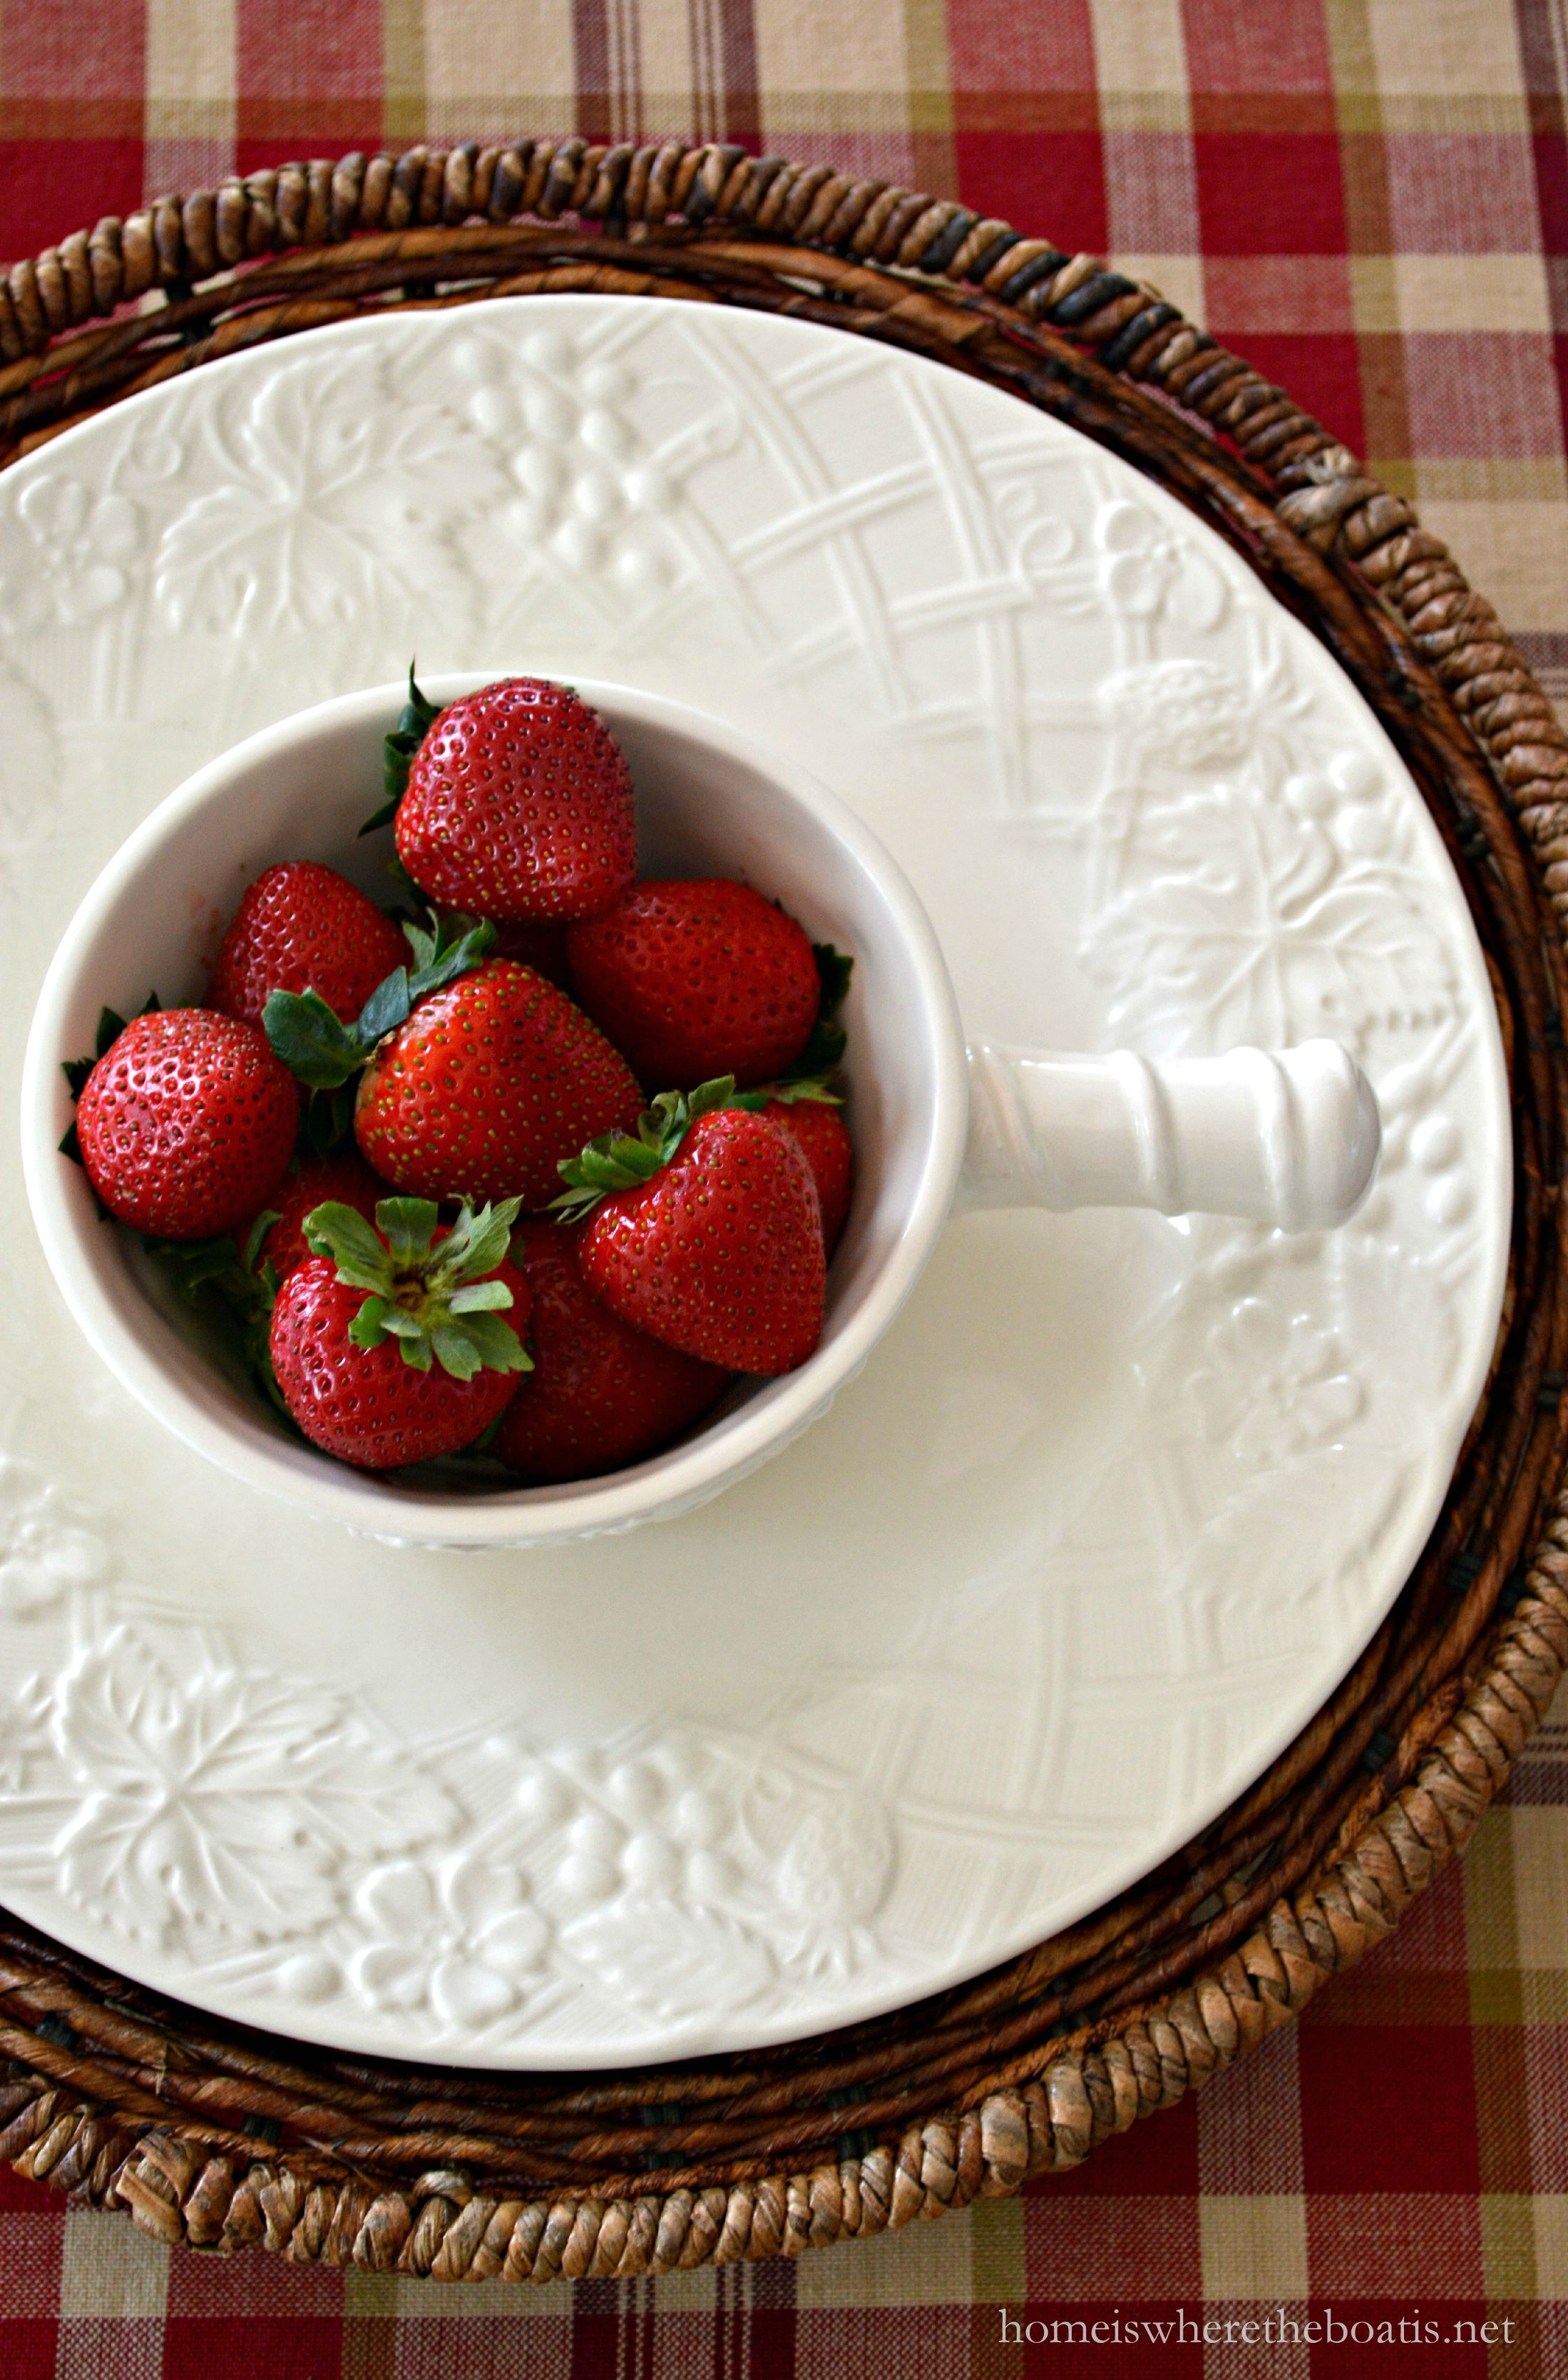 An English Countryside Onion Soup Bowl holds 15 ounces and could hold inidual desserts or dips. & A Fruit and Vegetable Centerpiece and Mikasa English Countryside ...